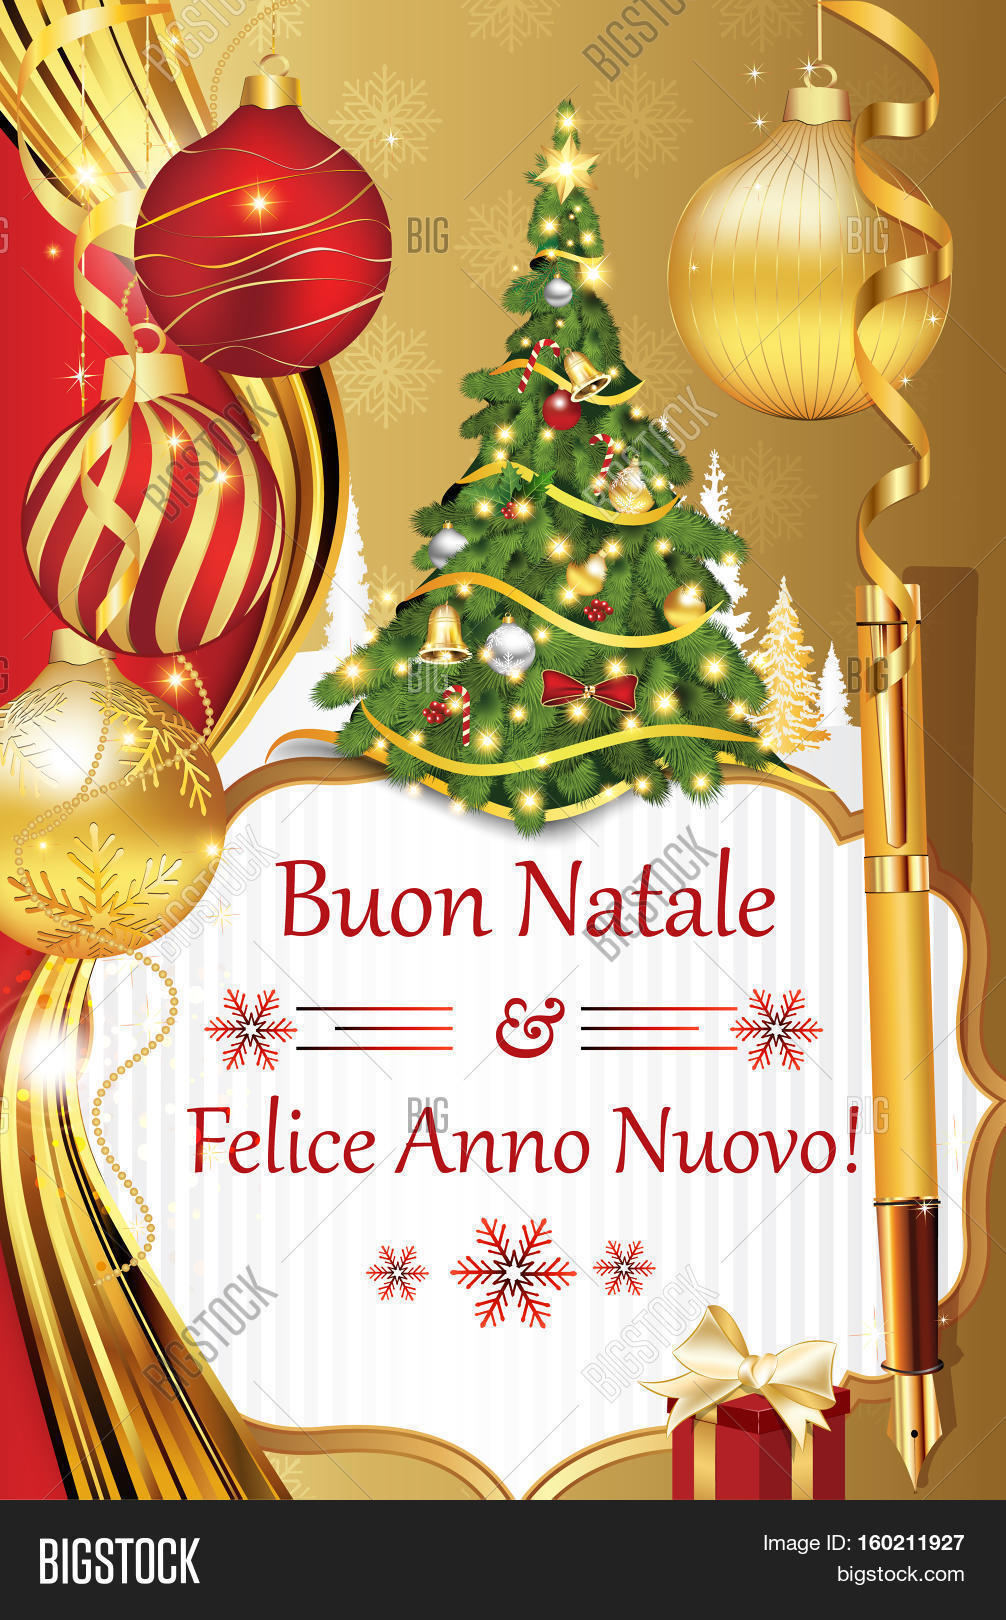 Buon natale e felice image photo free trial bigstock buon natale e felice anno nuovo new year wishes in italian language merry m4hsunfo